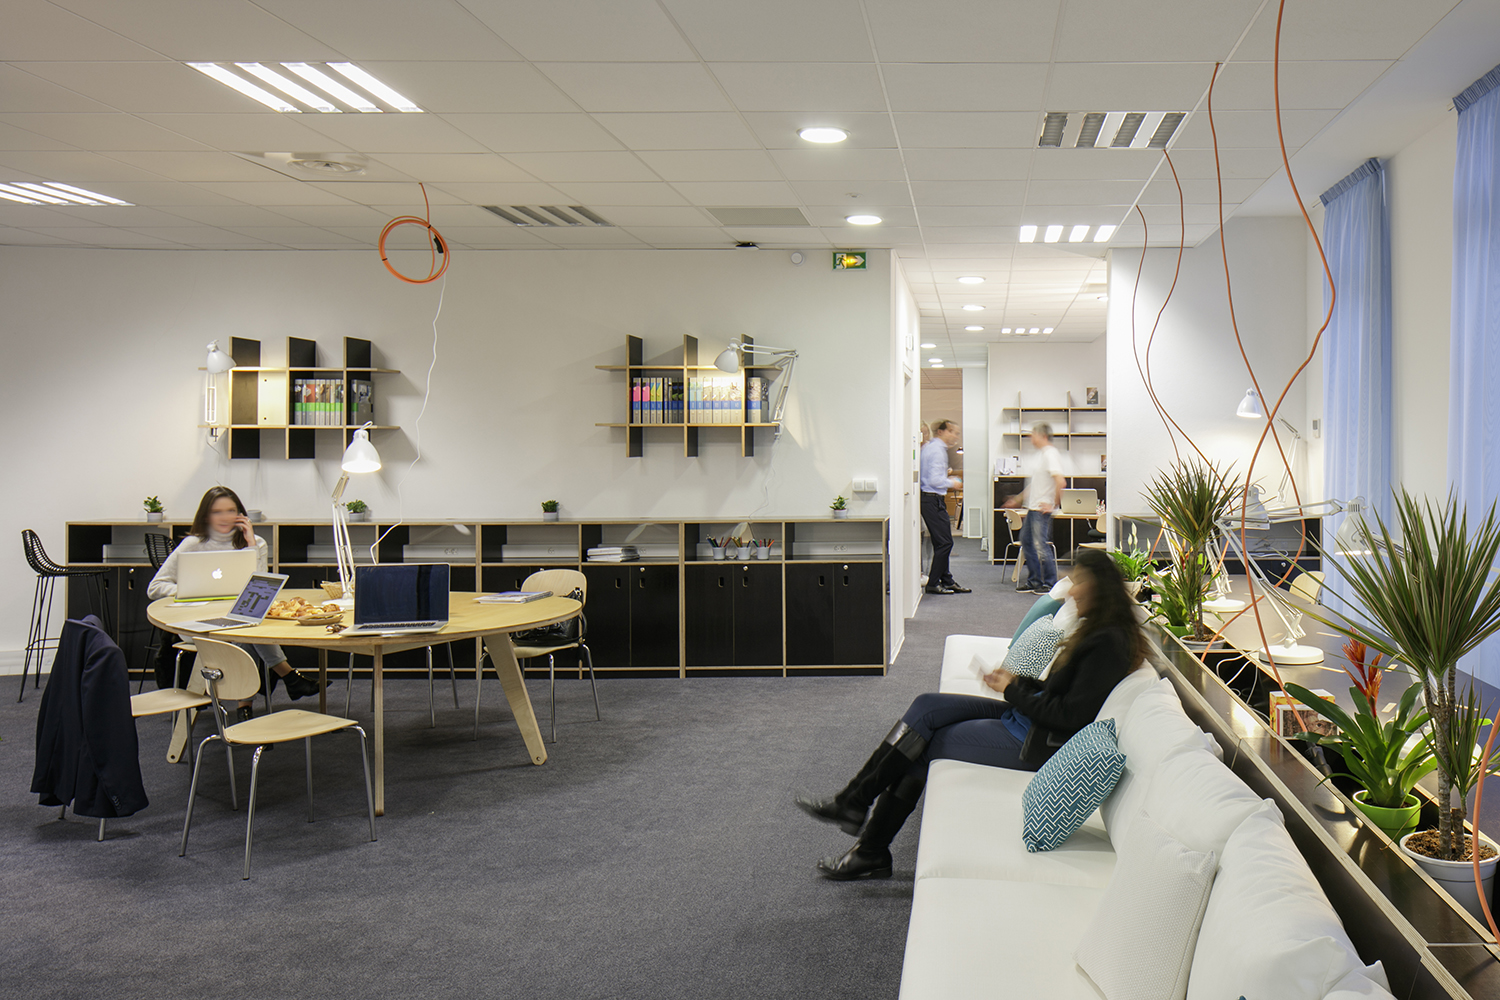 Espace coworking informel, mobilier MOA sur mesure - Coworking space with custom-made MOA furniture